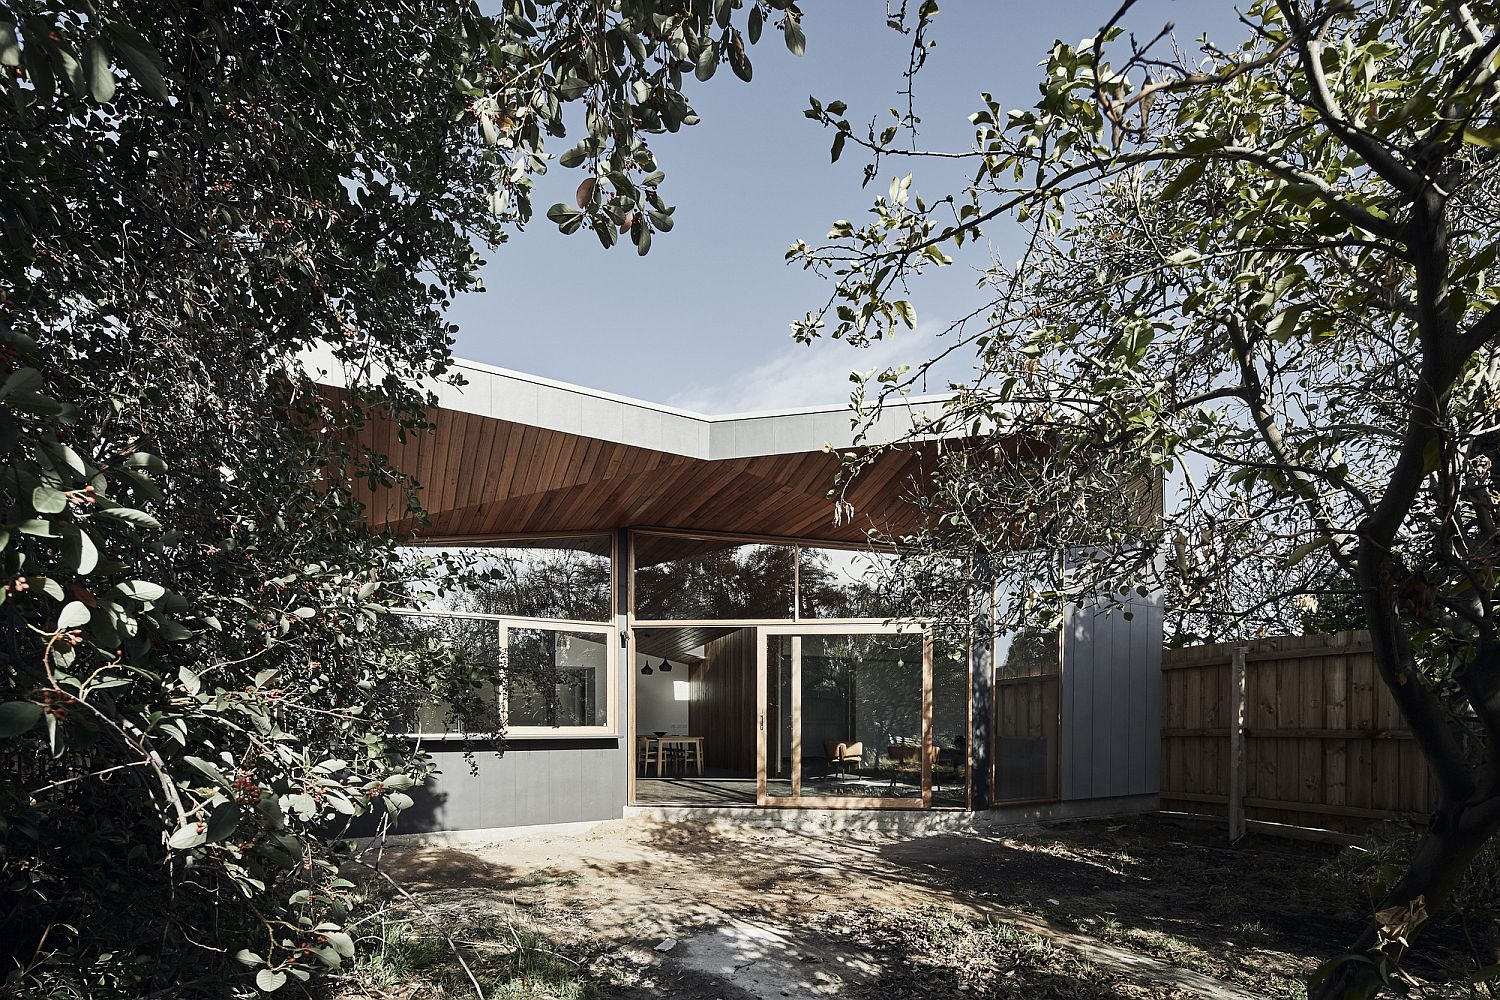 Trees offer shade to the exterior of the house